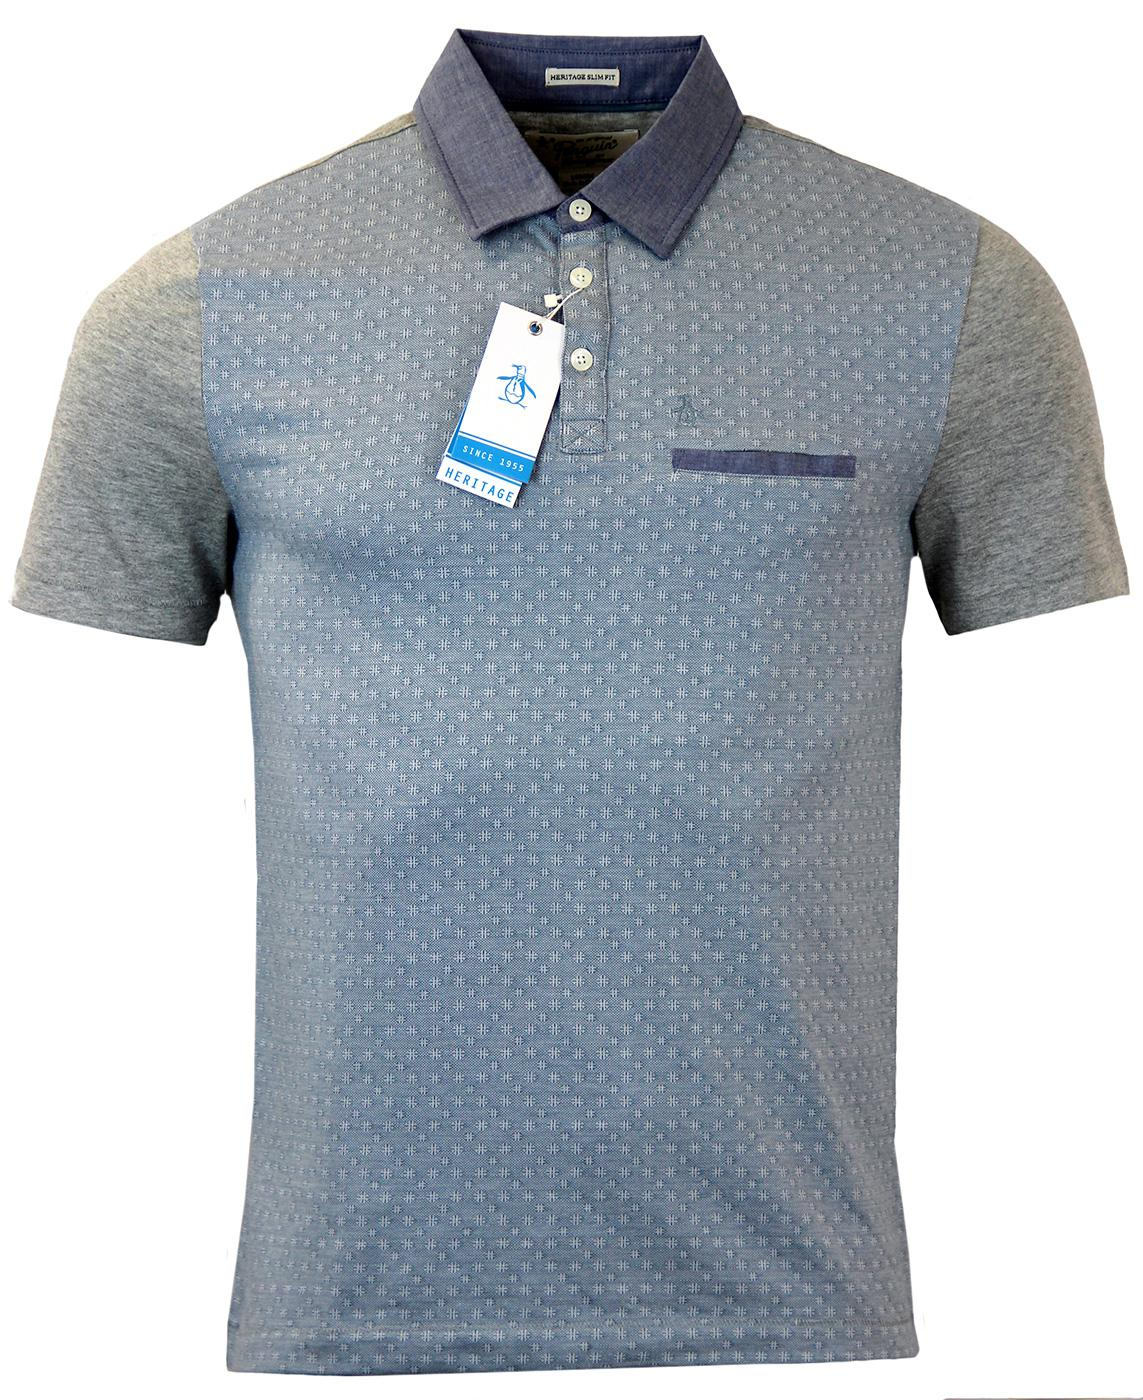 ORIGINAL PENGUIN Retro Mod Geo Print Polo